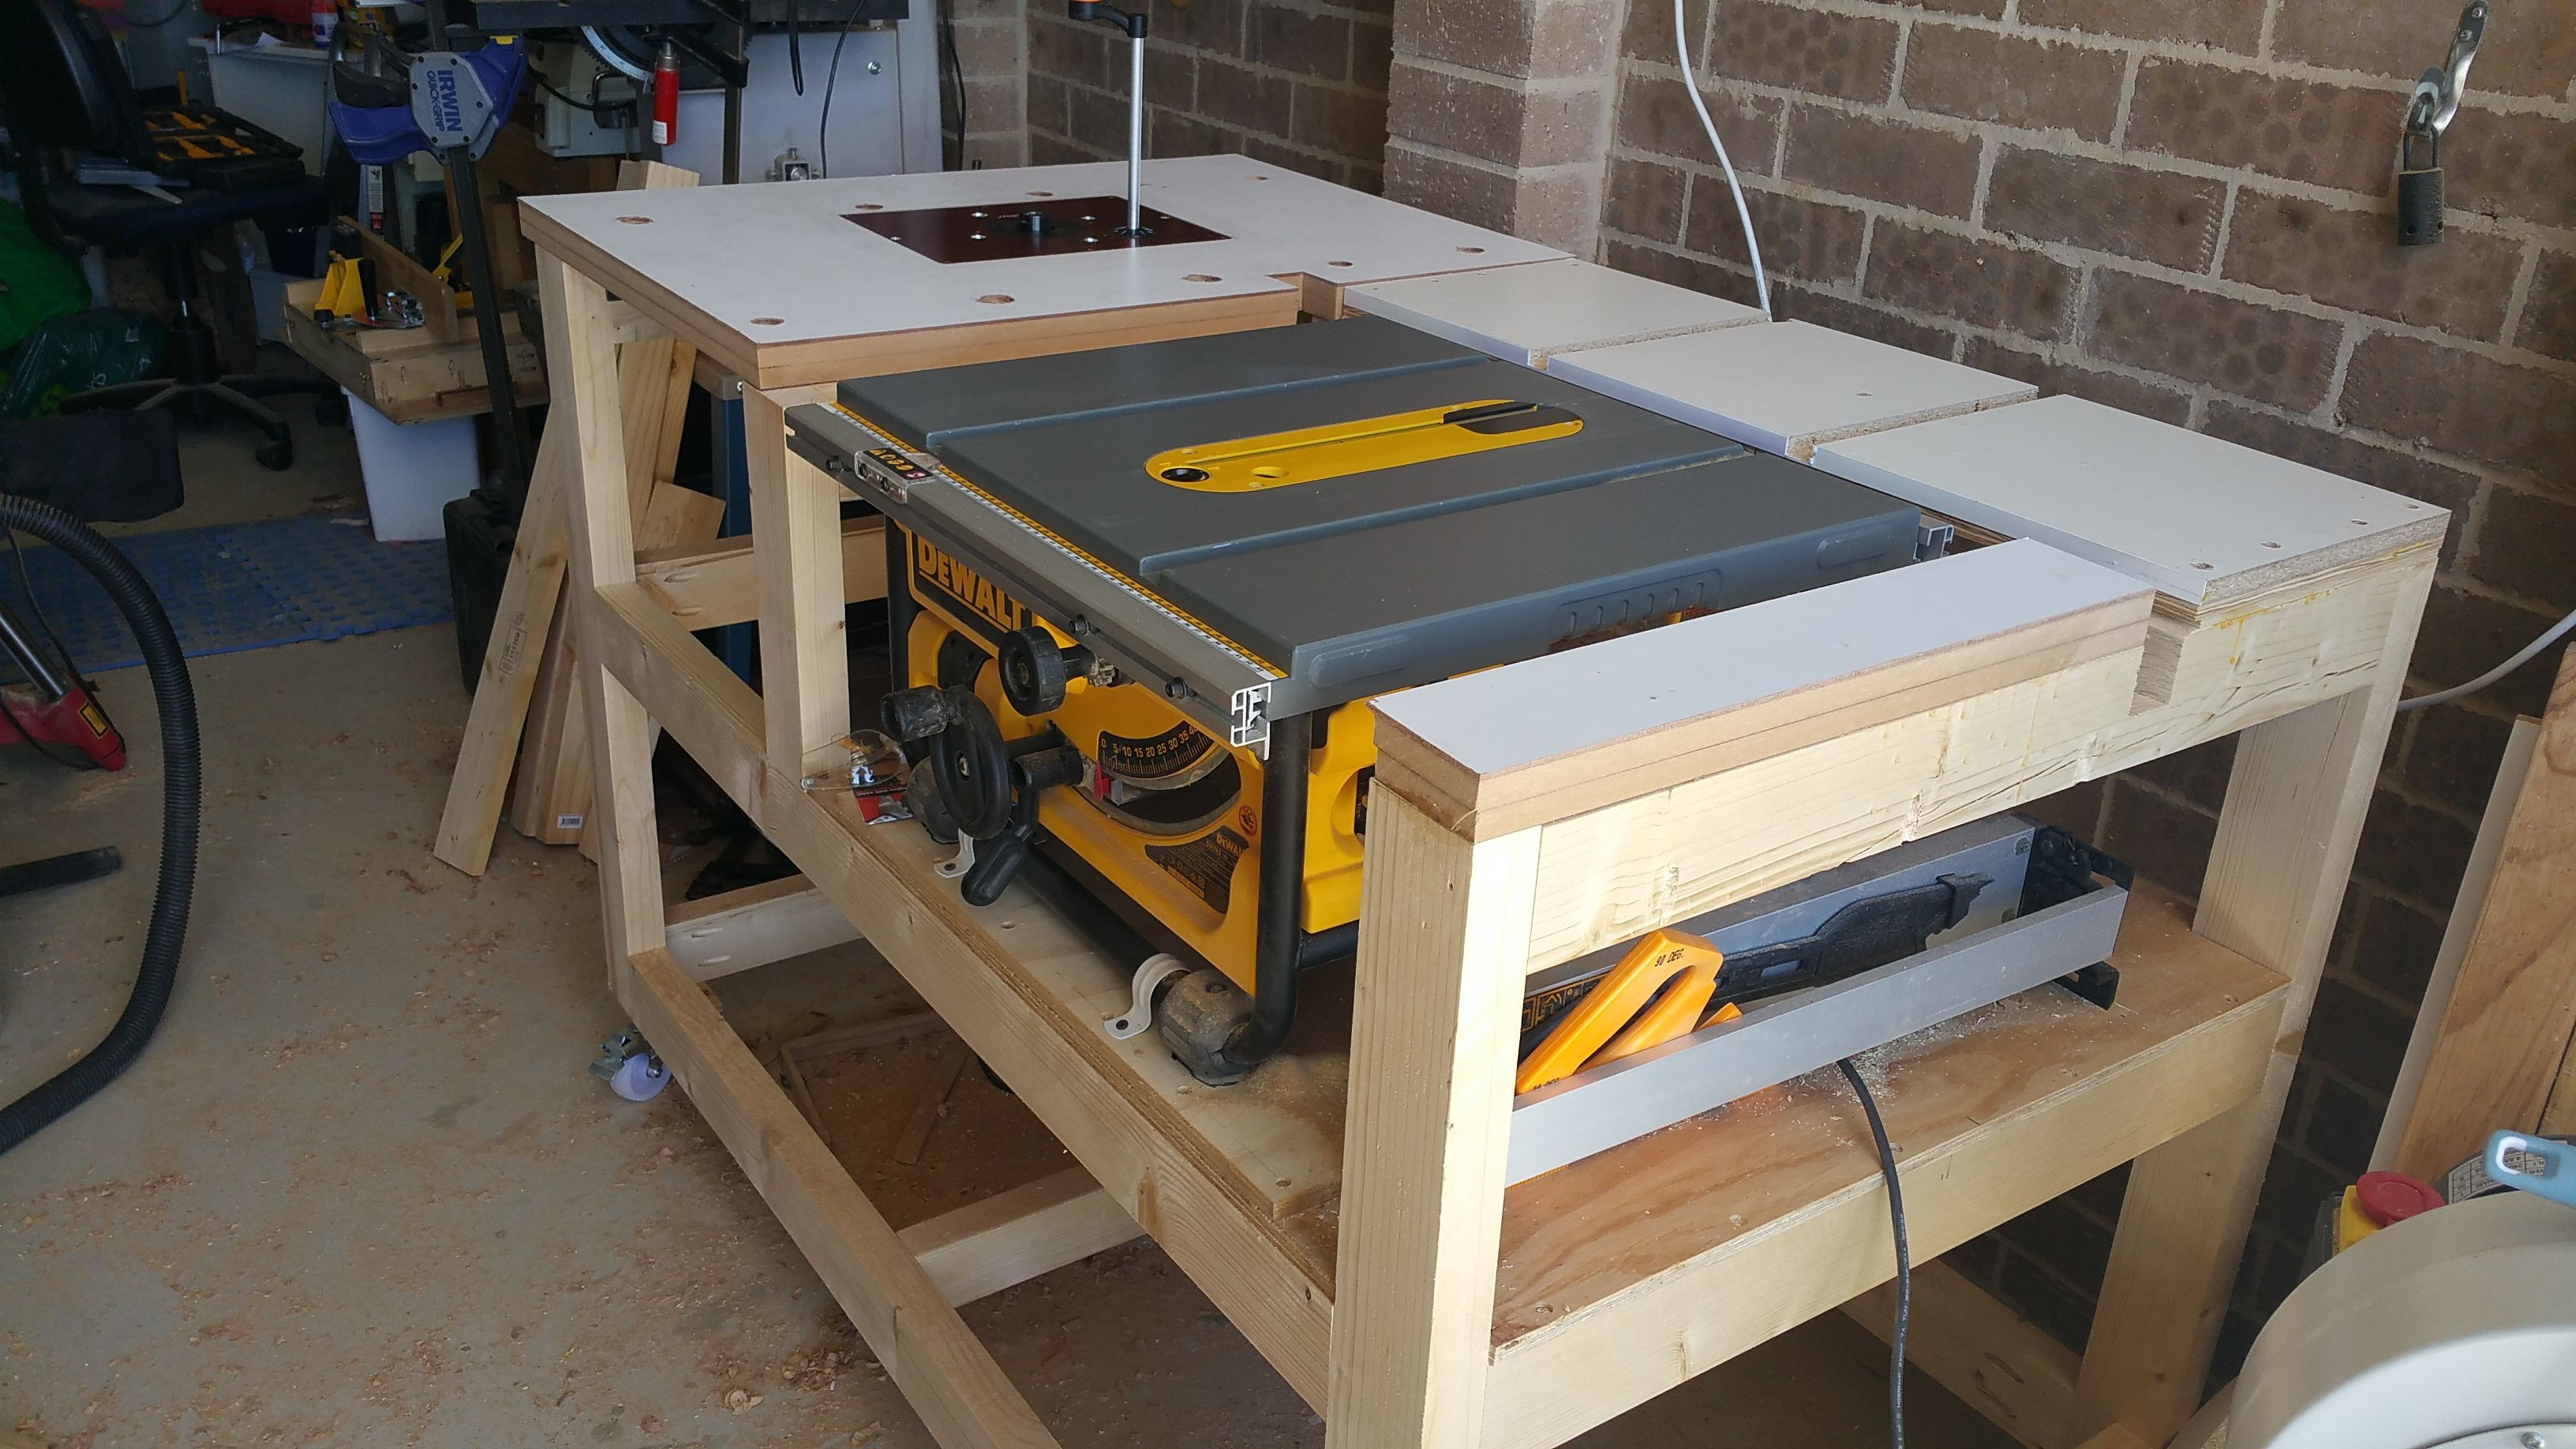 Diy Benchtop Router Table Workbench For Dw745 With Router Table And Outfeed I Made